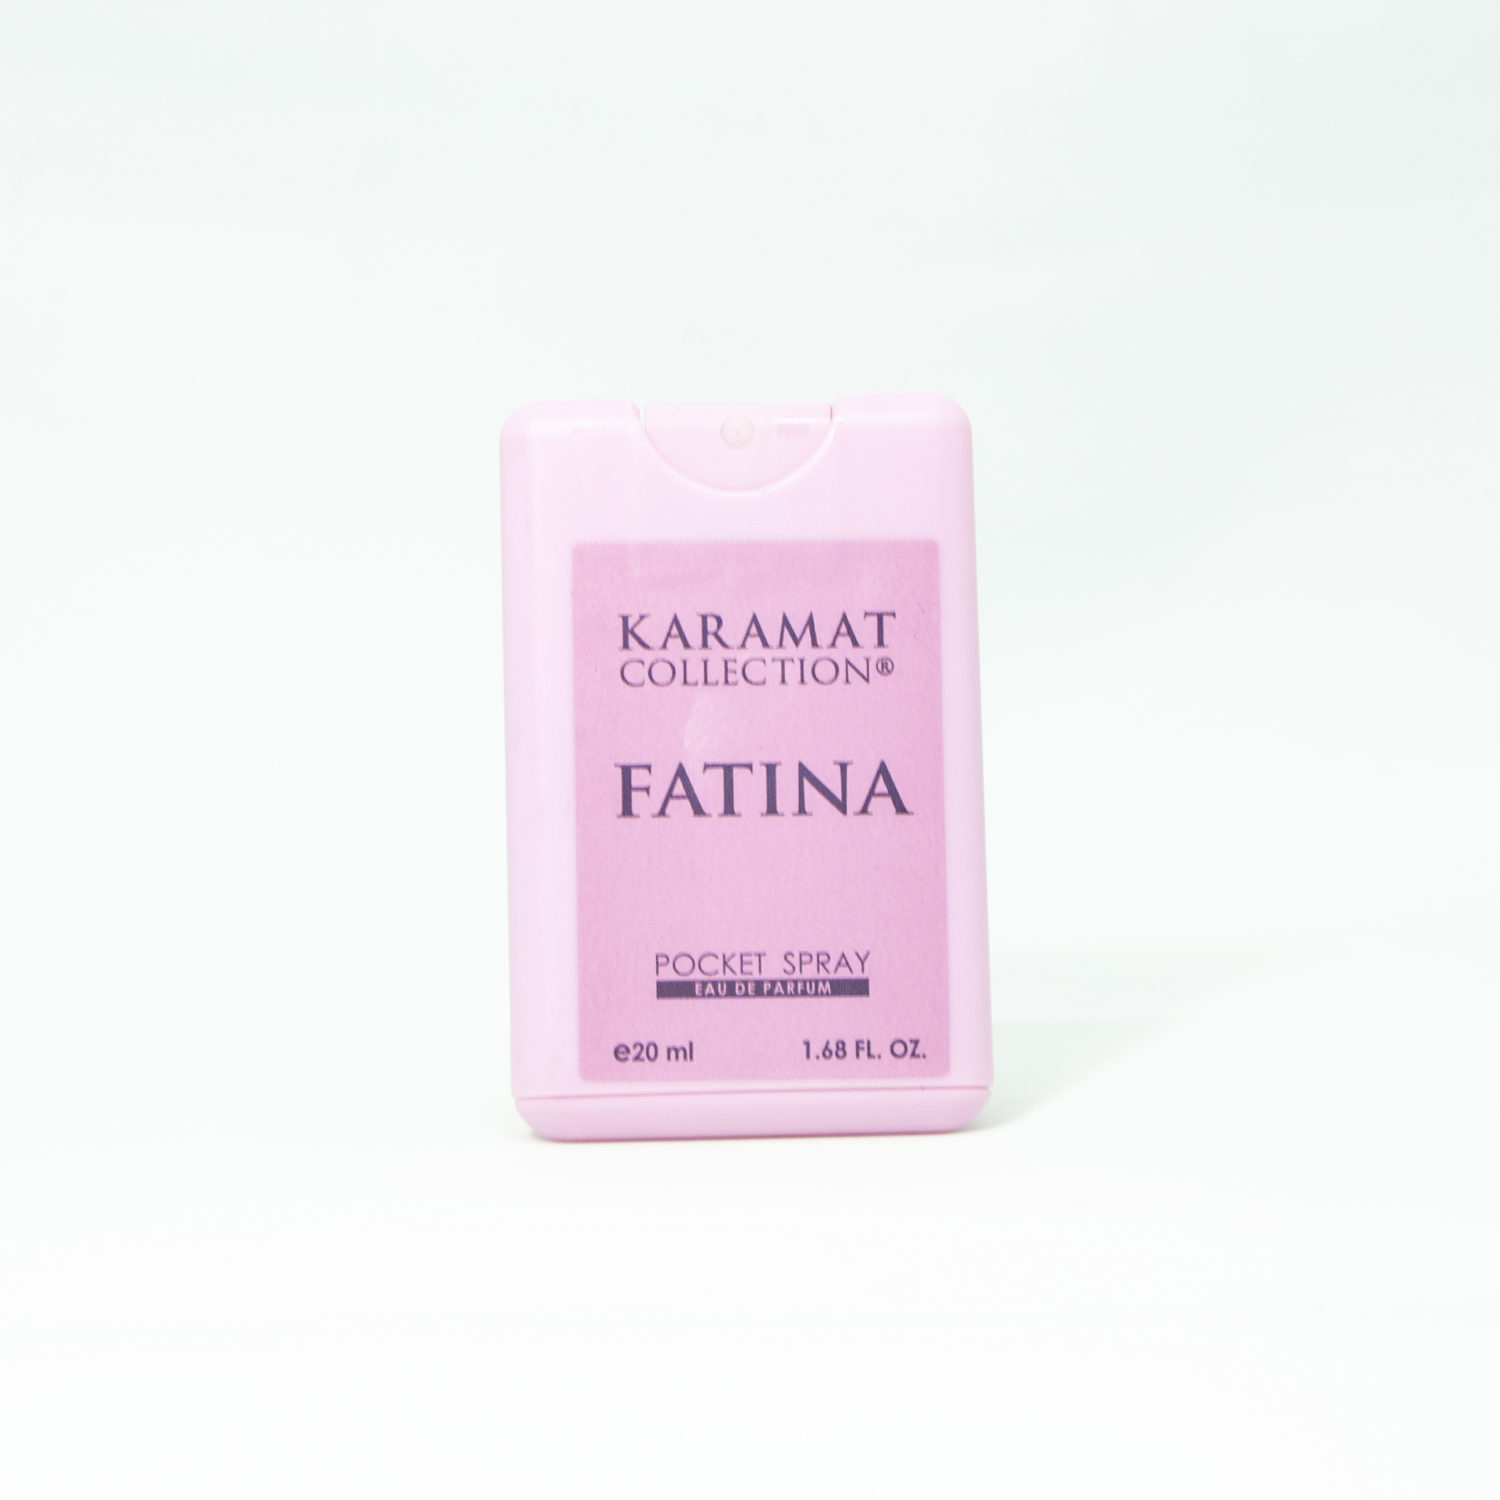 Fatina parfum, pocket spray